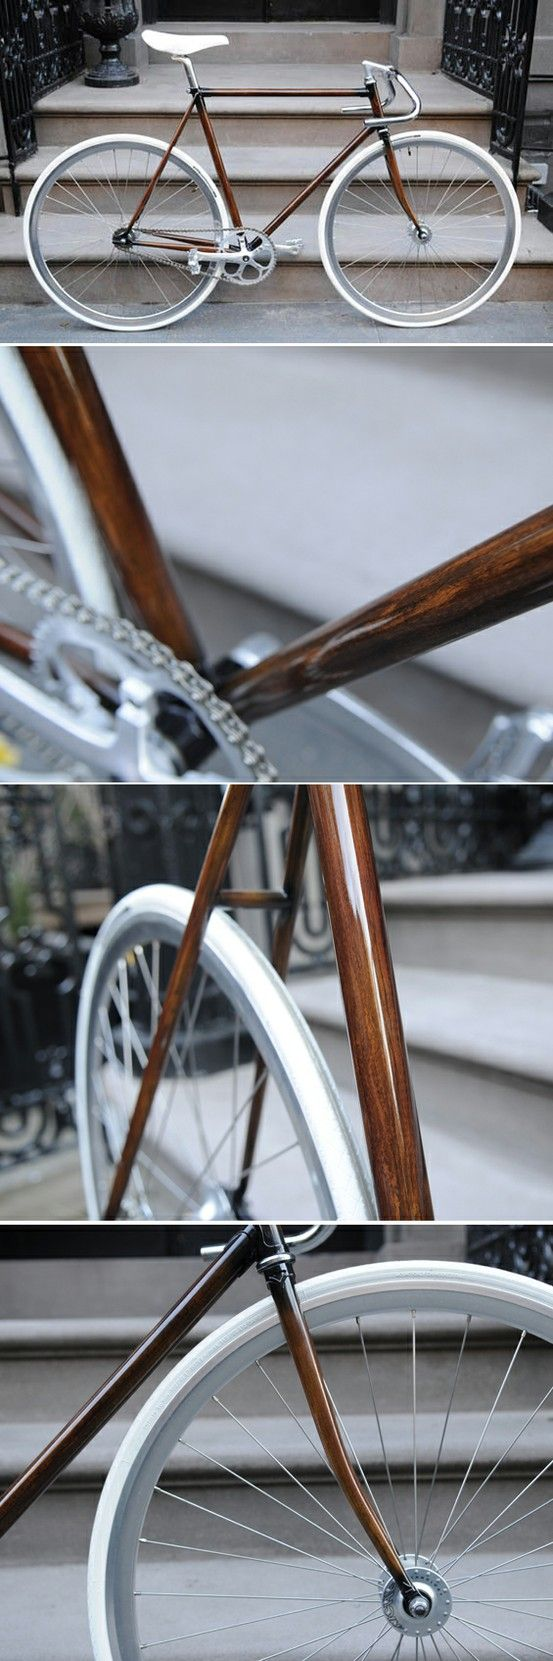 Good wood - another lovely wood effect veneer single gear/fixie bike by Rob Pollock